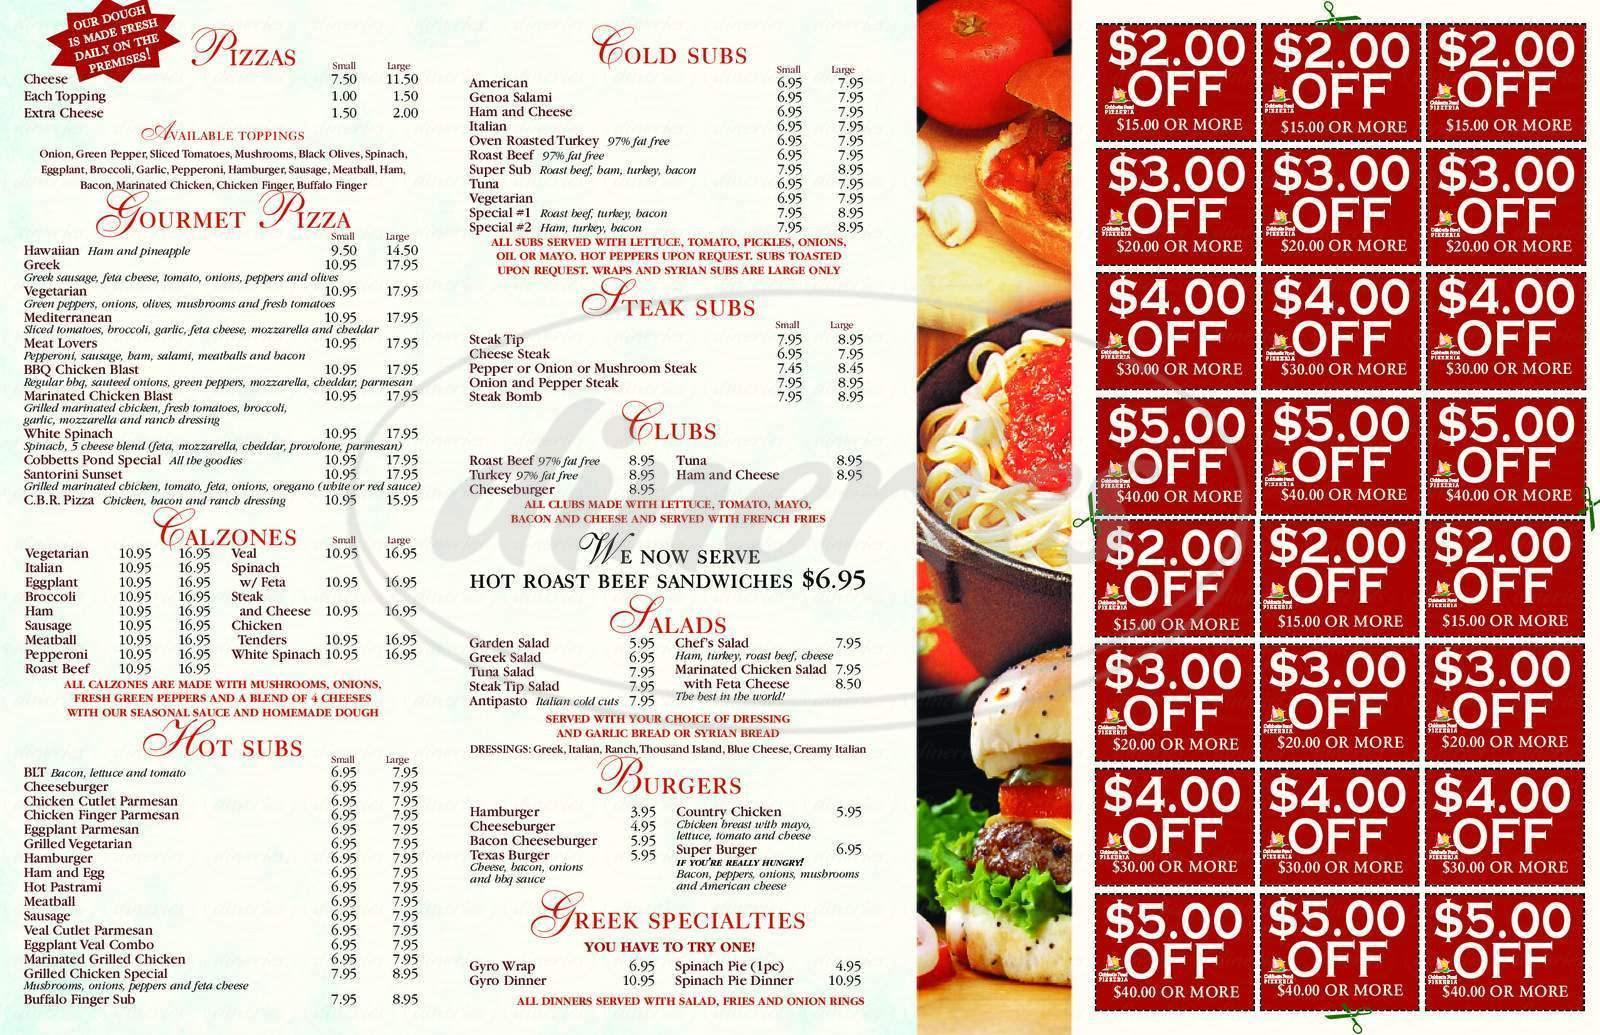 menu for Cobbetts Pond Pizzeria